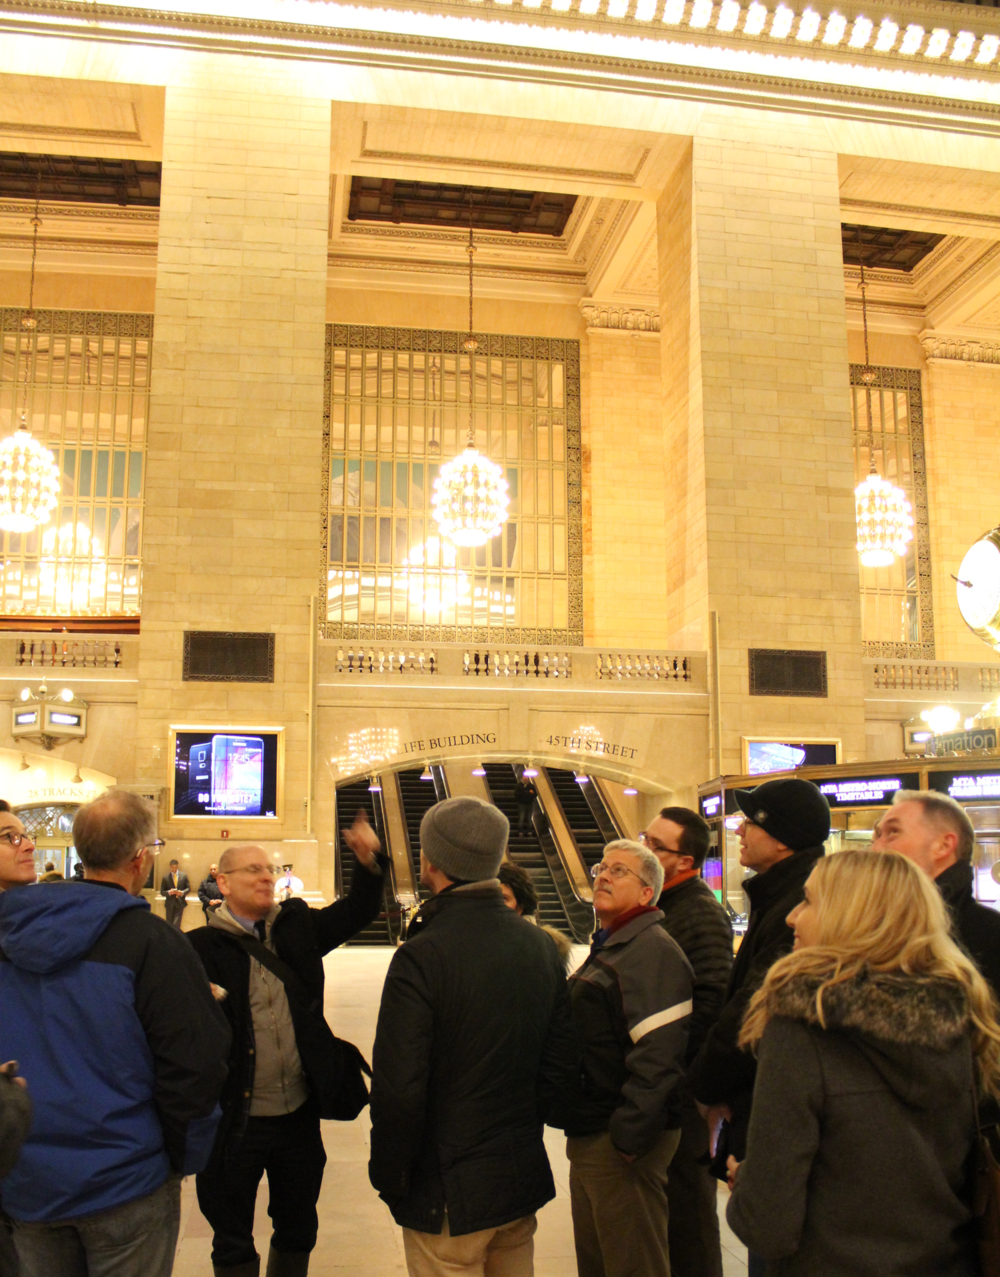 Grand Central Station Tour